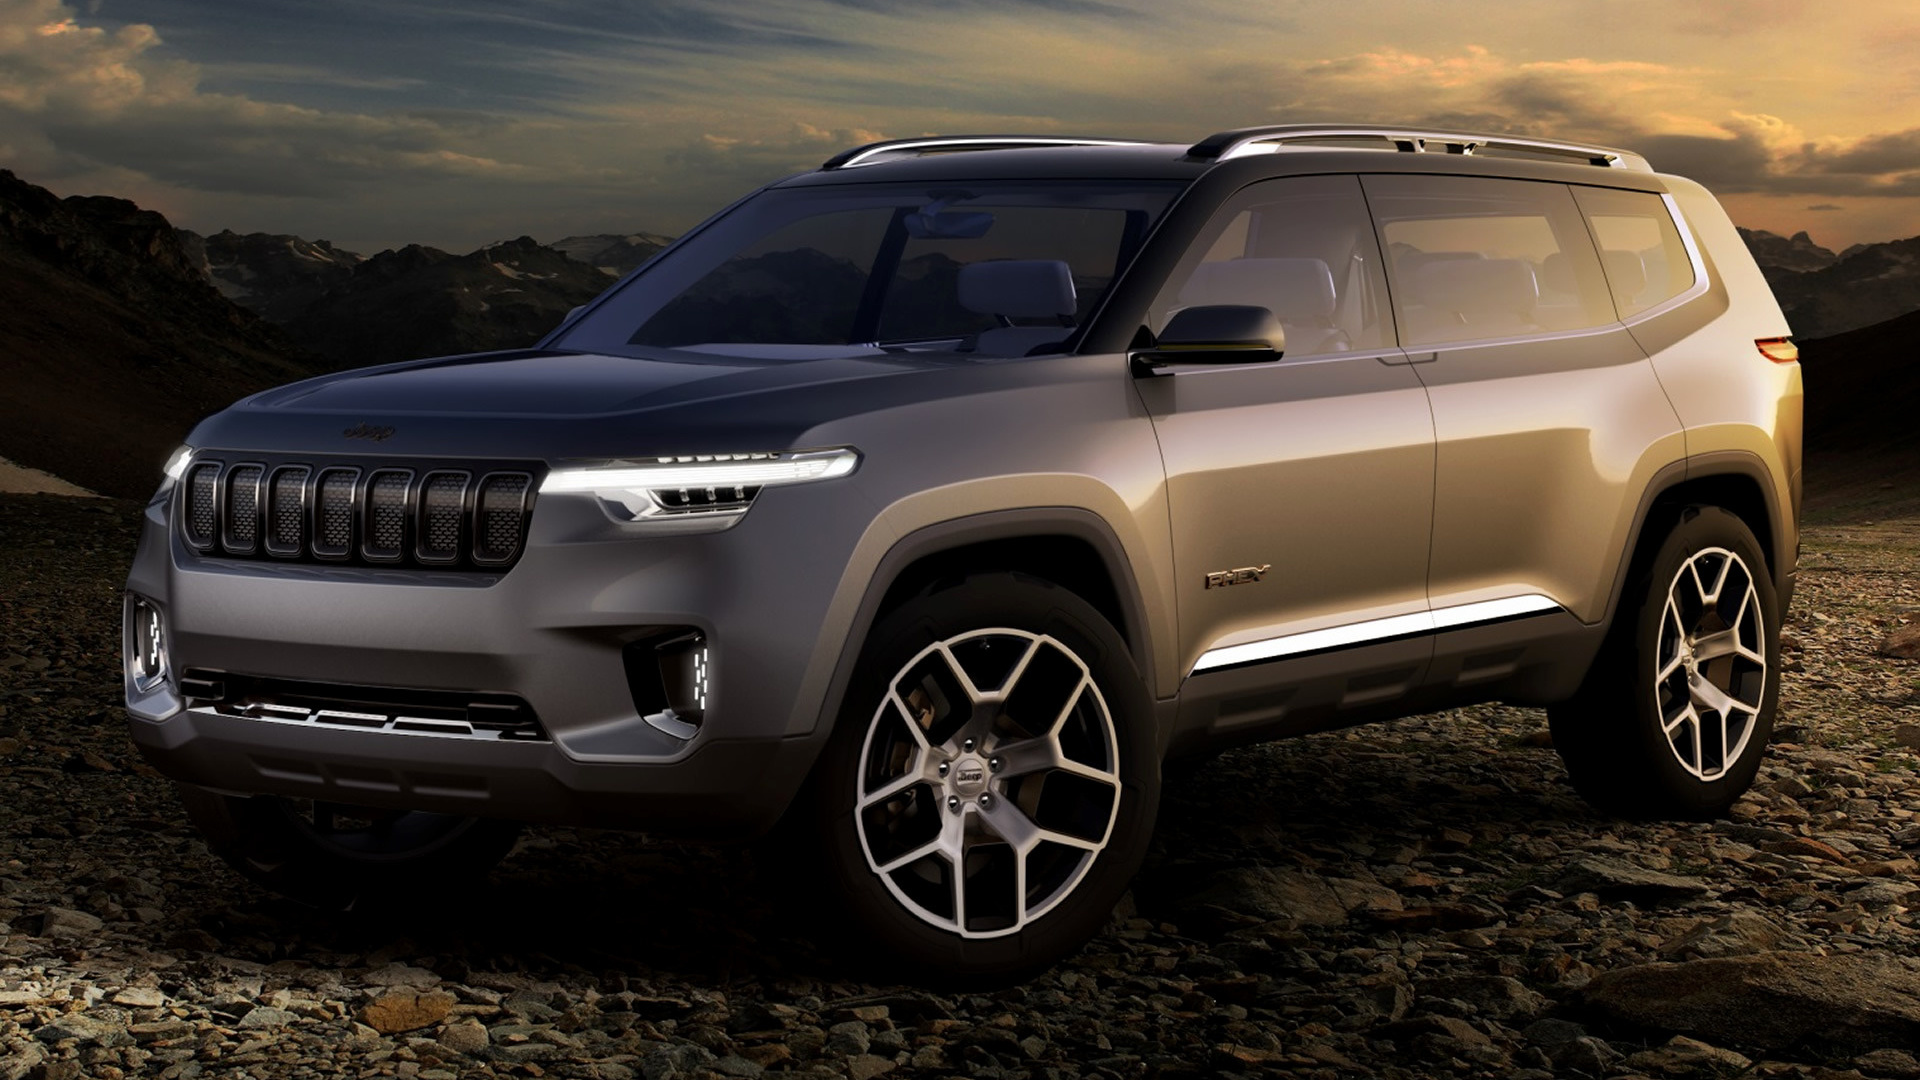 Jeep Yuntu Concept (2017) Wallpapers and HD Images - Car Pixel